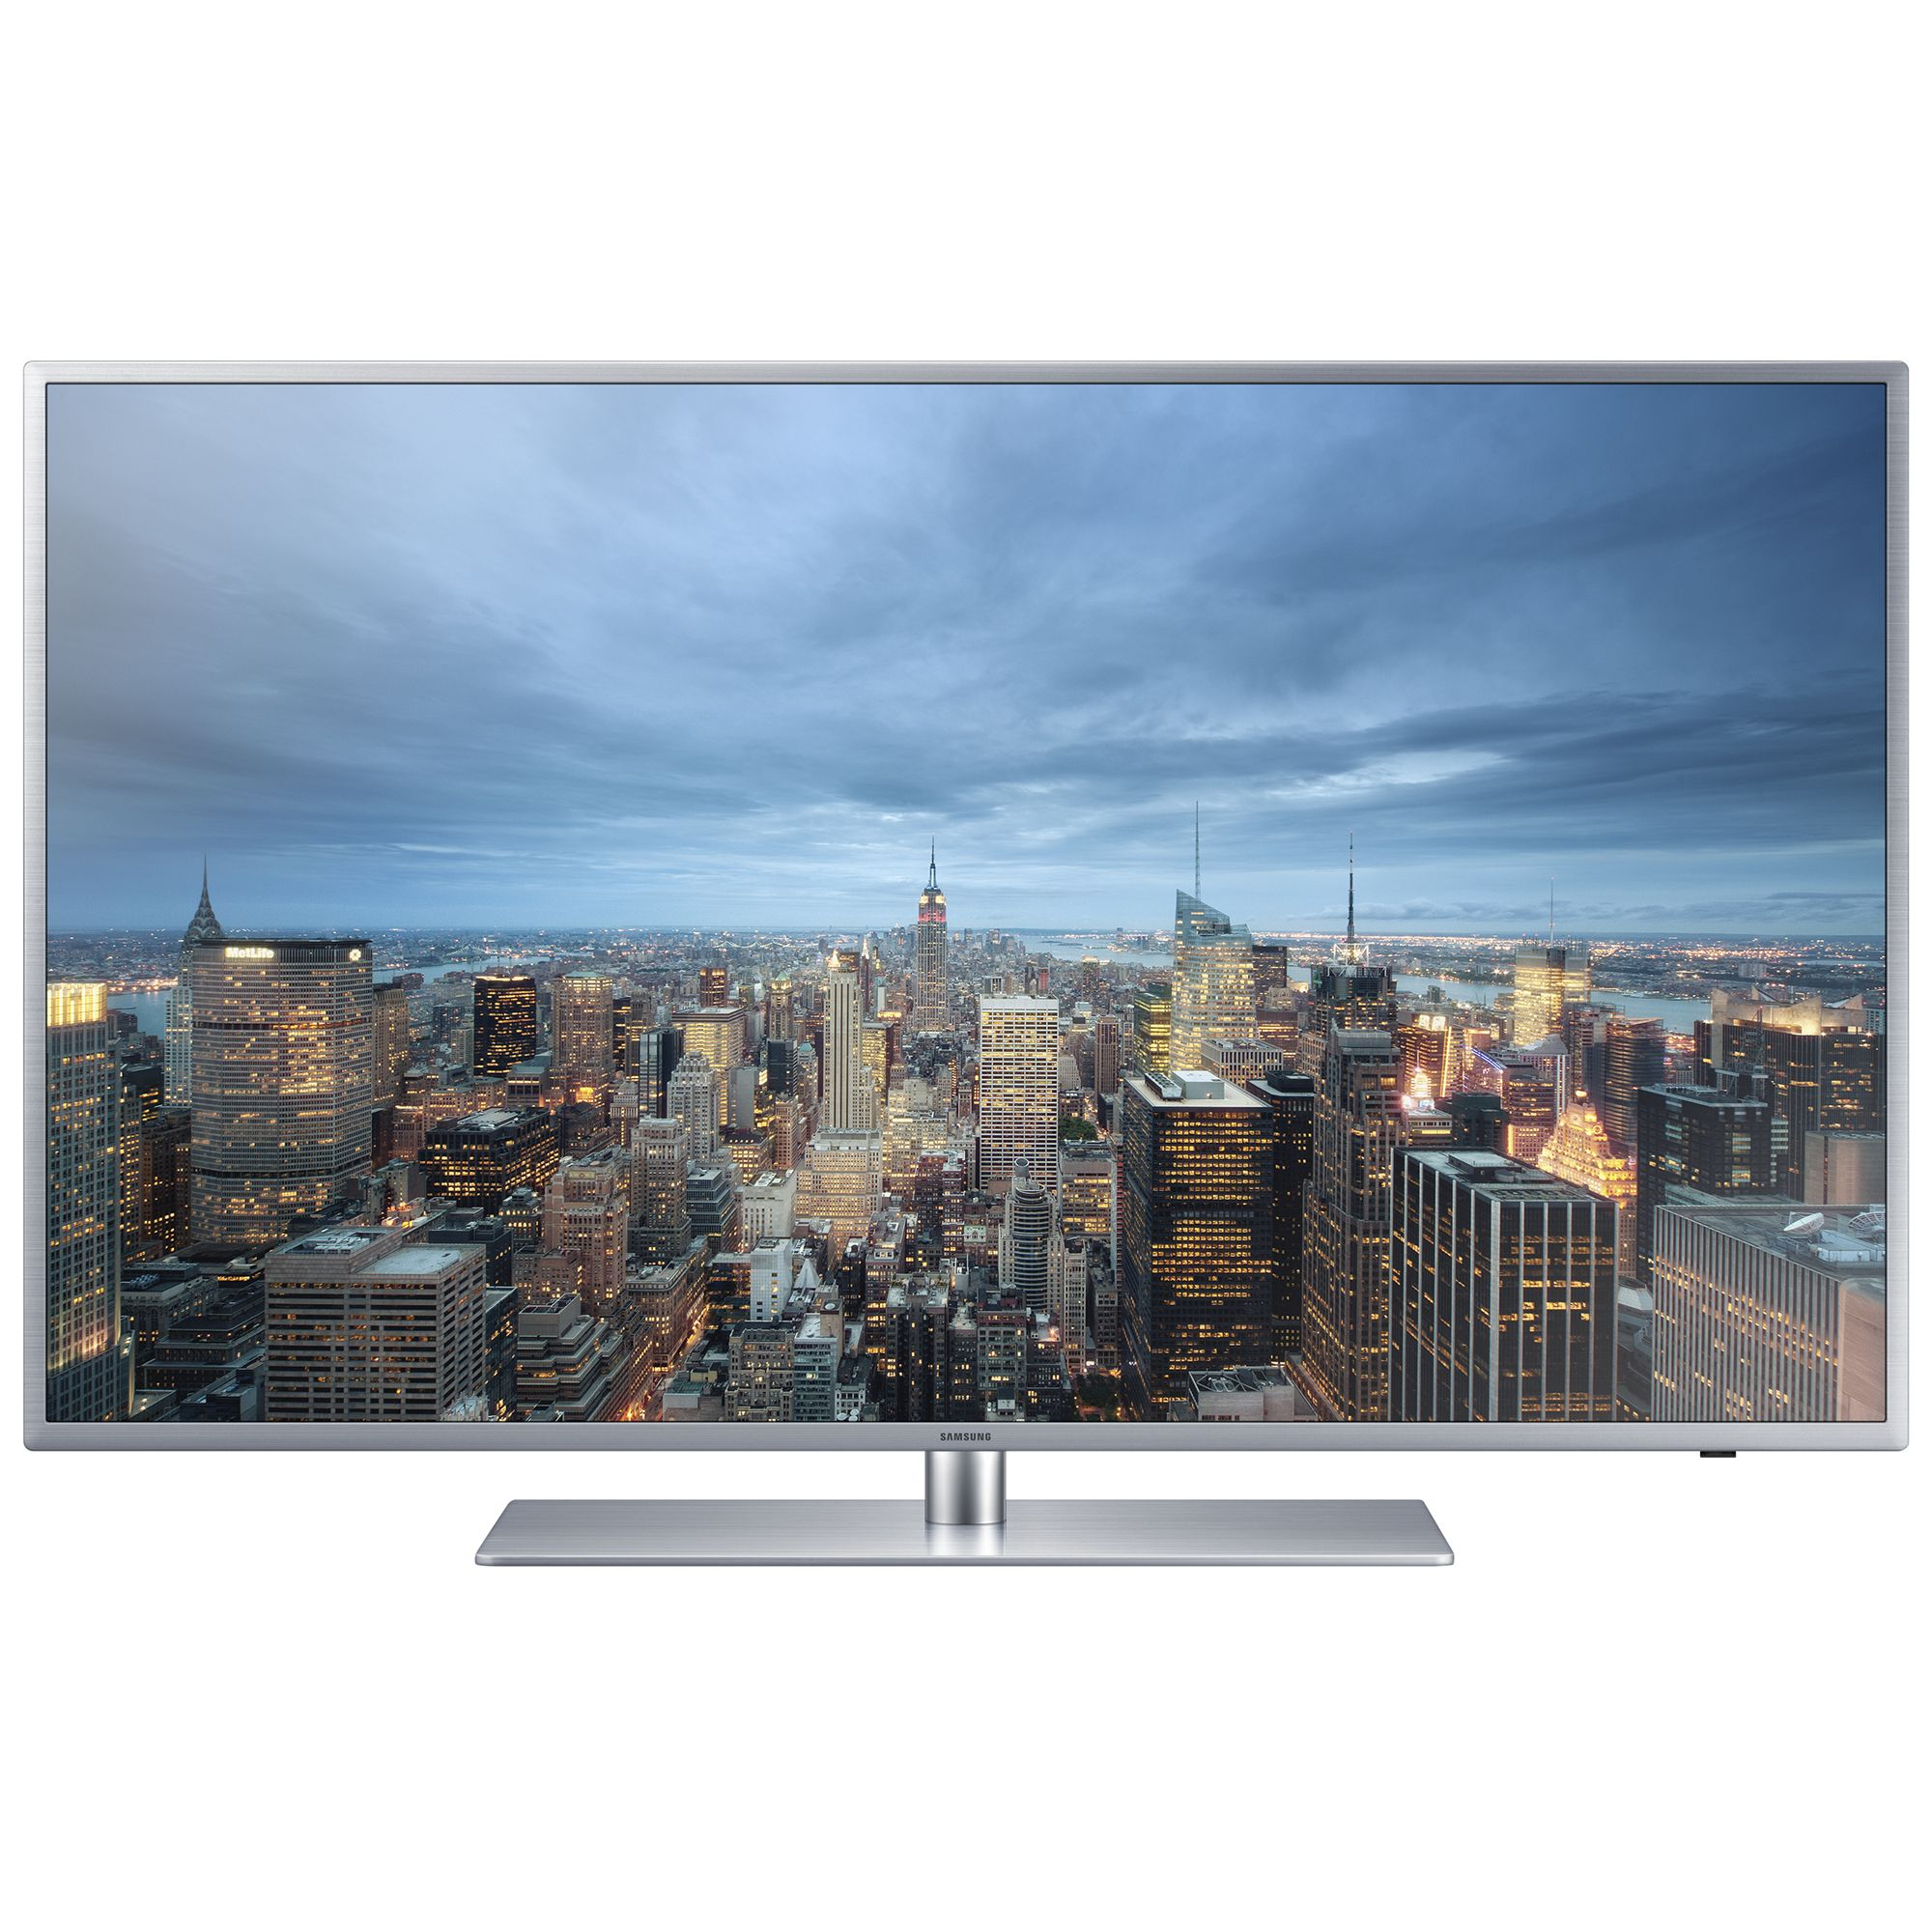 Televizor Smart LED Samsung 138 cm Ultra HD/4K 55JU6410 Quad Core USB CI+ WiFi OS Tizen Silver